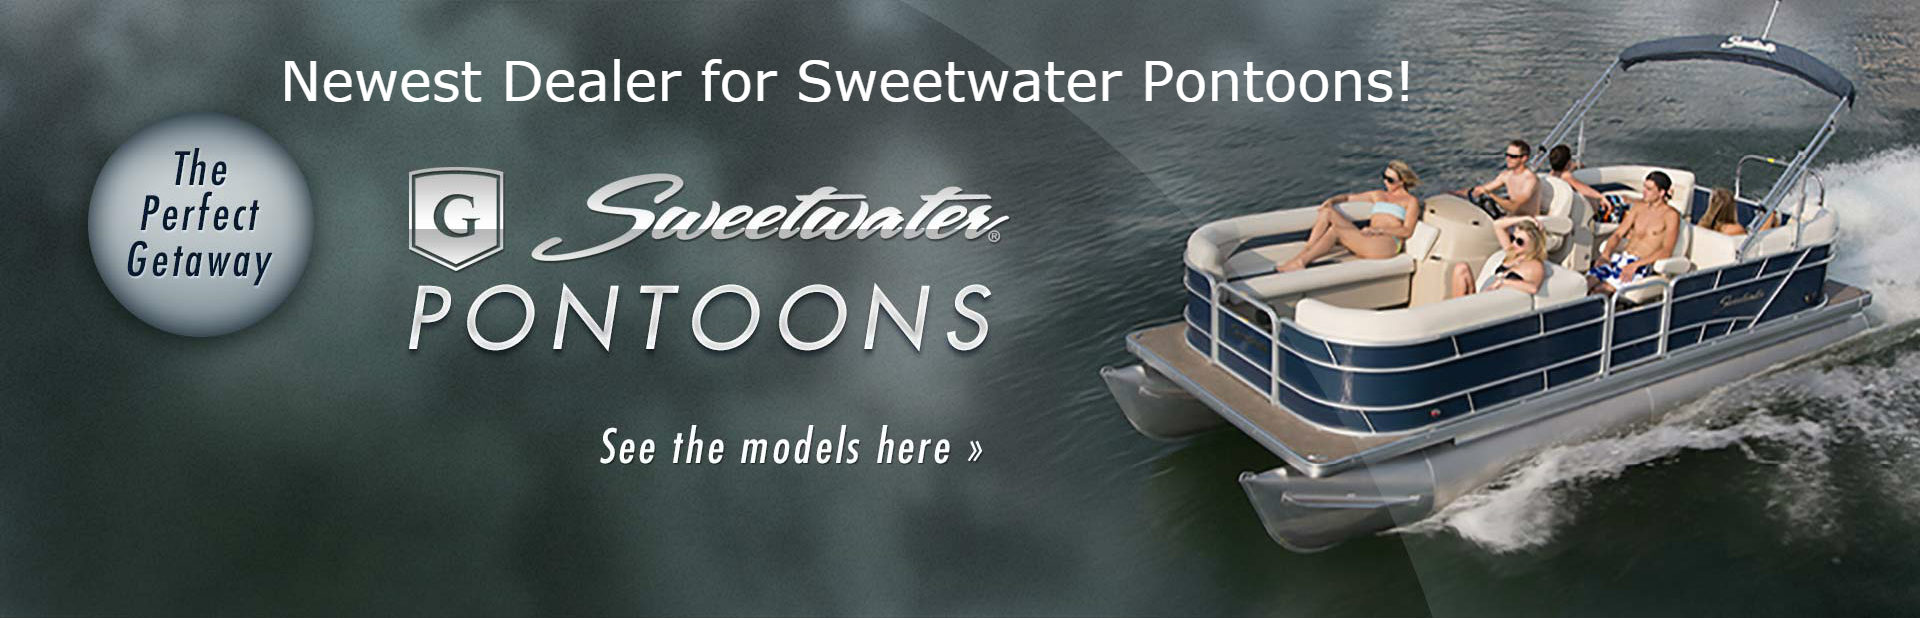 Newest Sweetwater Pontoon Dealer